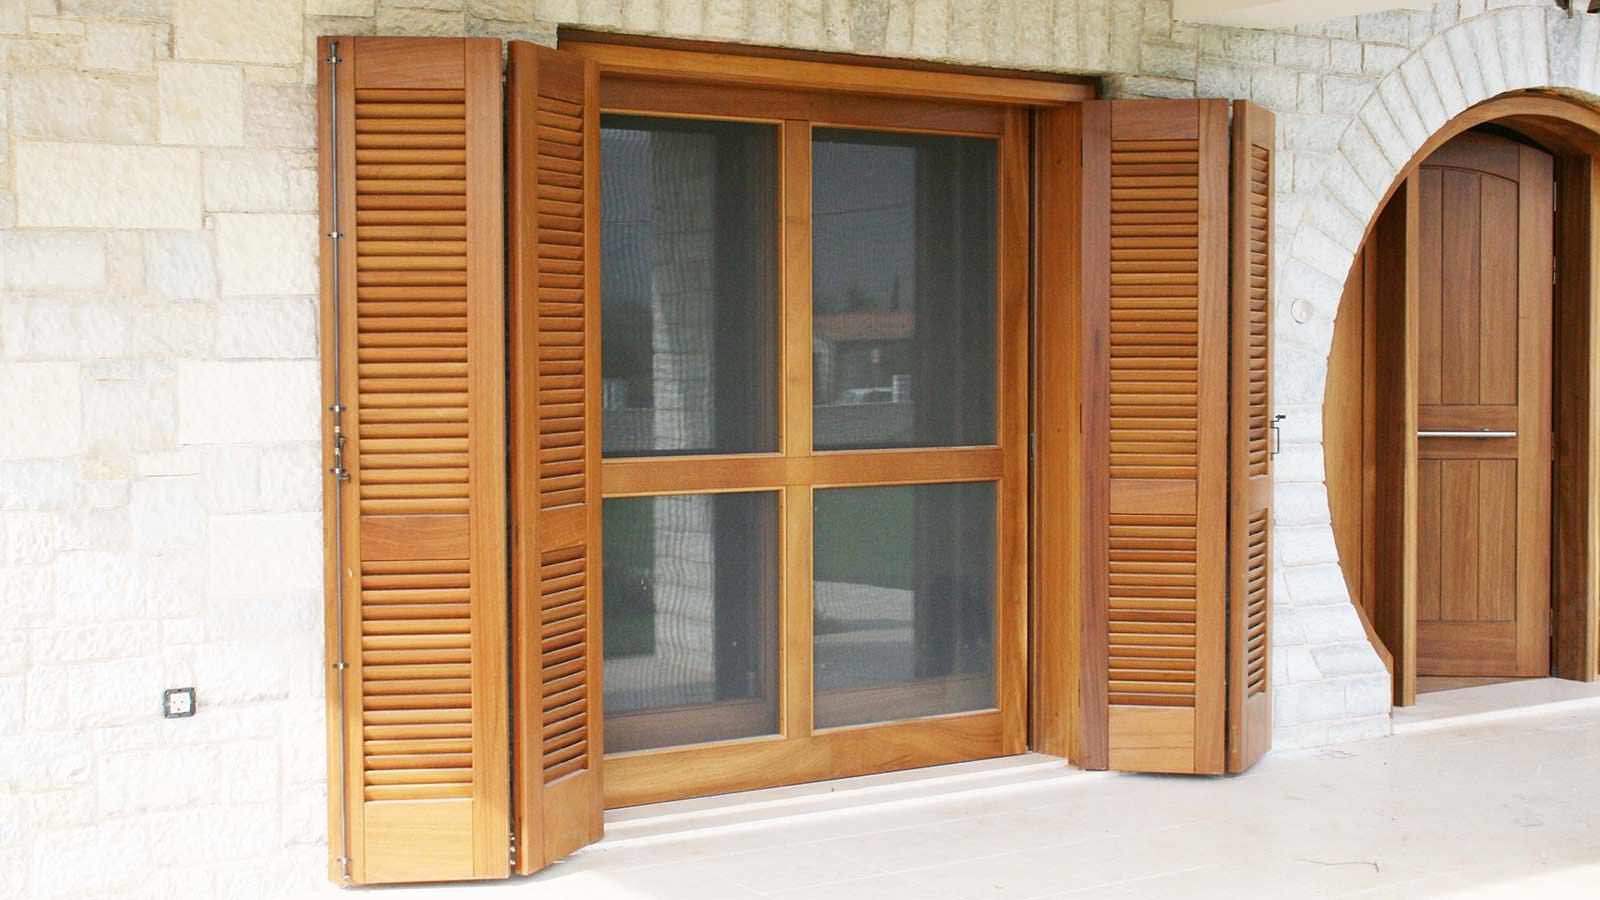 Four section balcony door made of solid wood IROCO